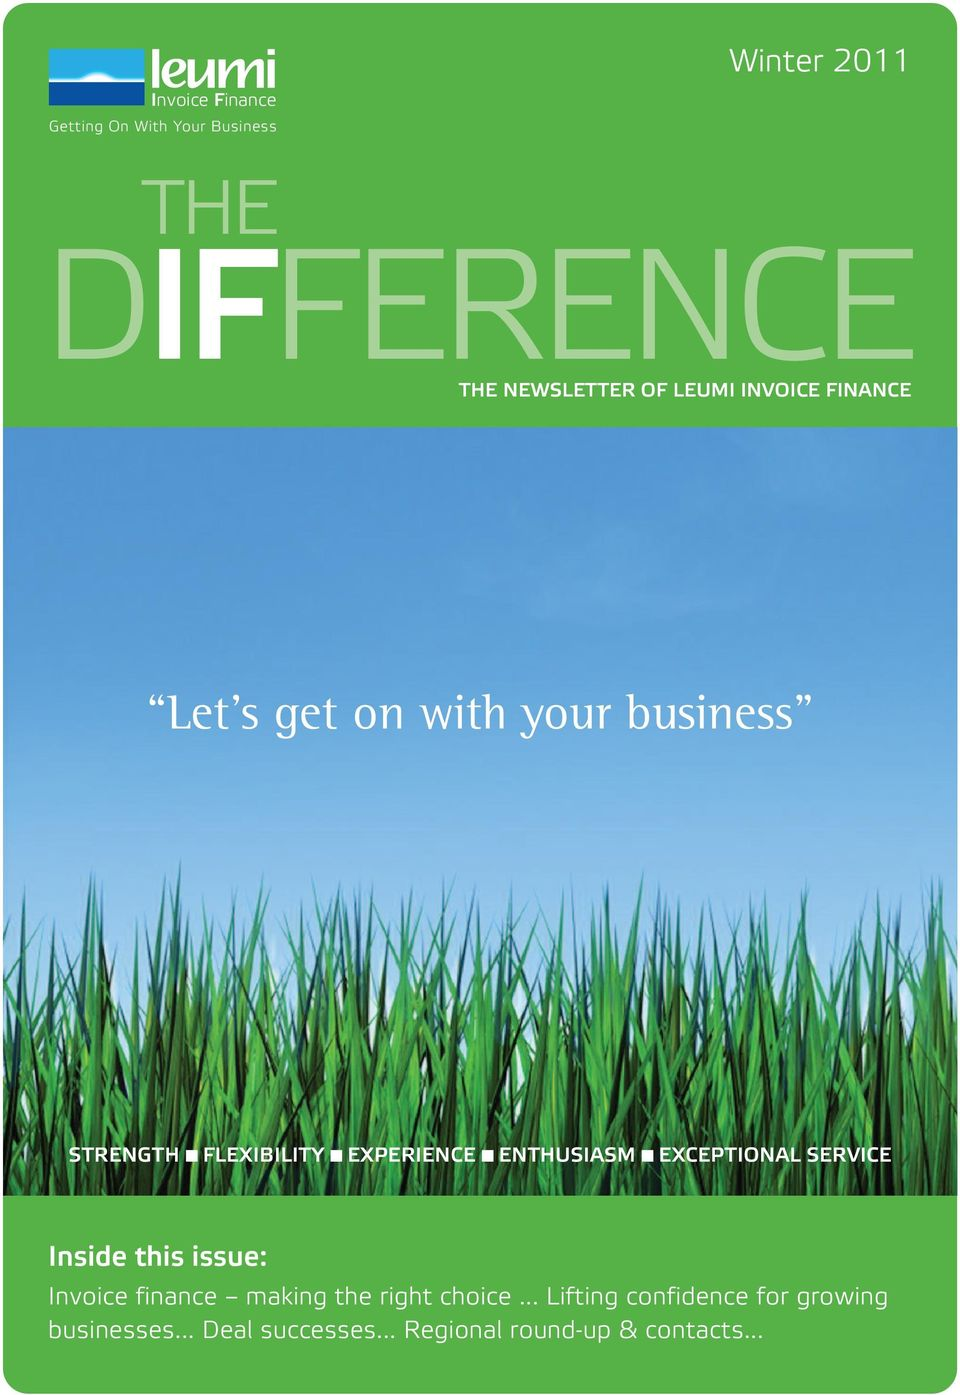 ENTHUSIASM EXCEPTIONAL SERVICE Inside this issue: Invoice finance making the right choice.